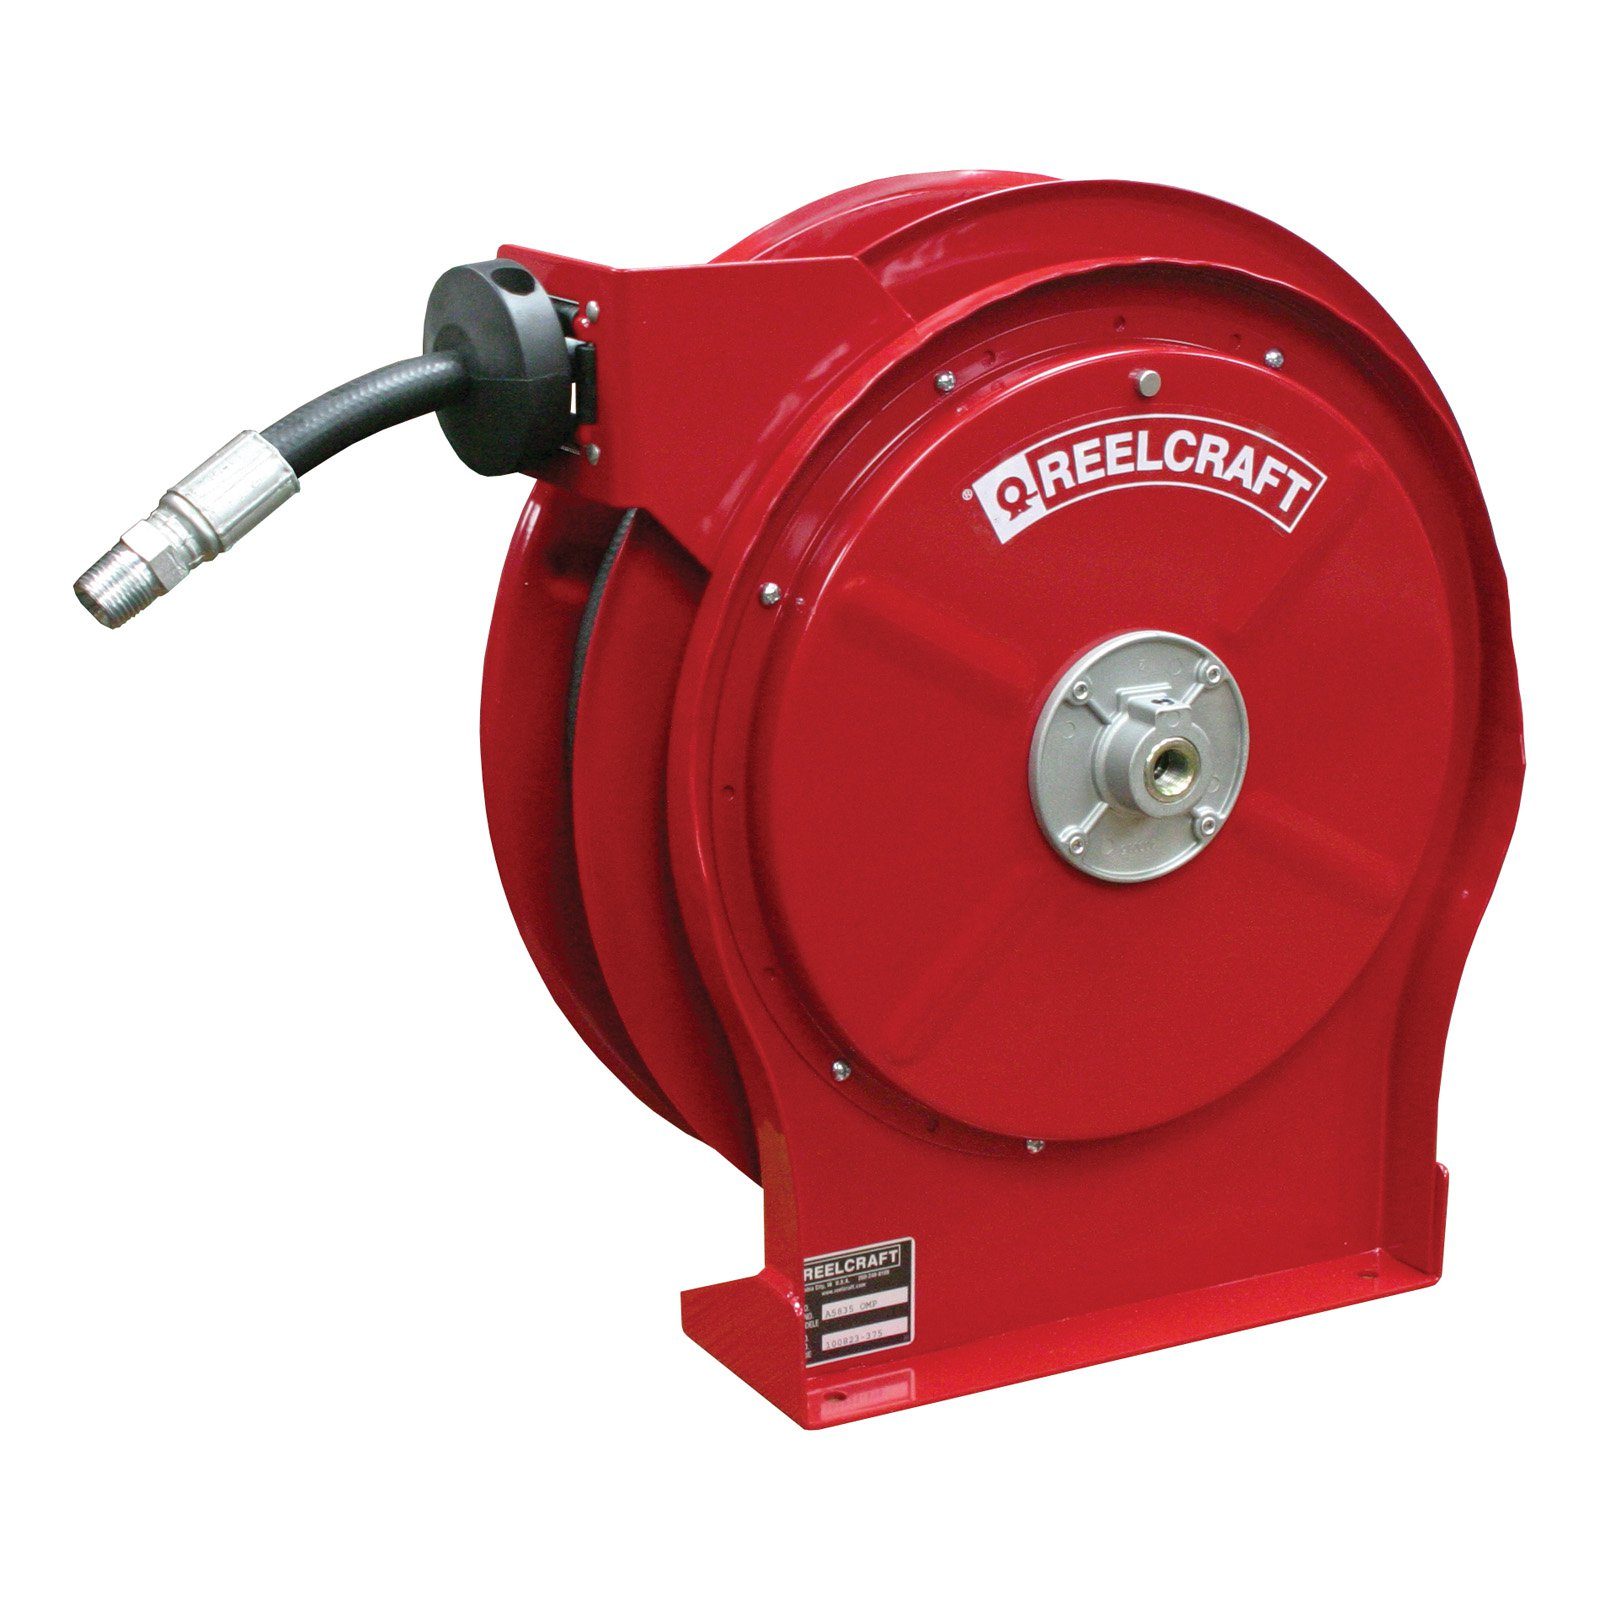 Reelcraft Premium Duty Compact Oil 1/2 in. Hose Reel - 35 ft.